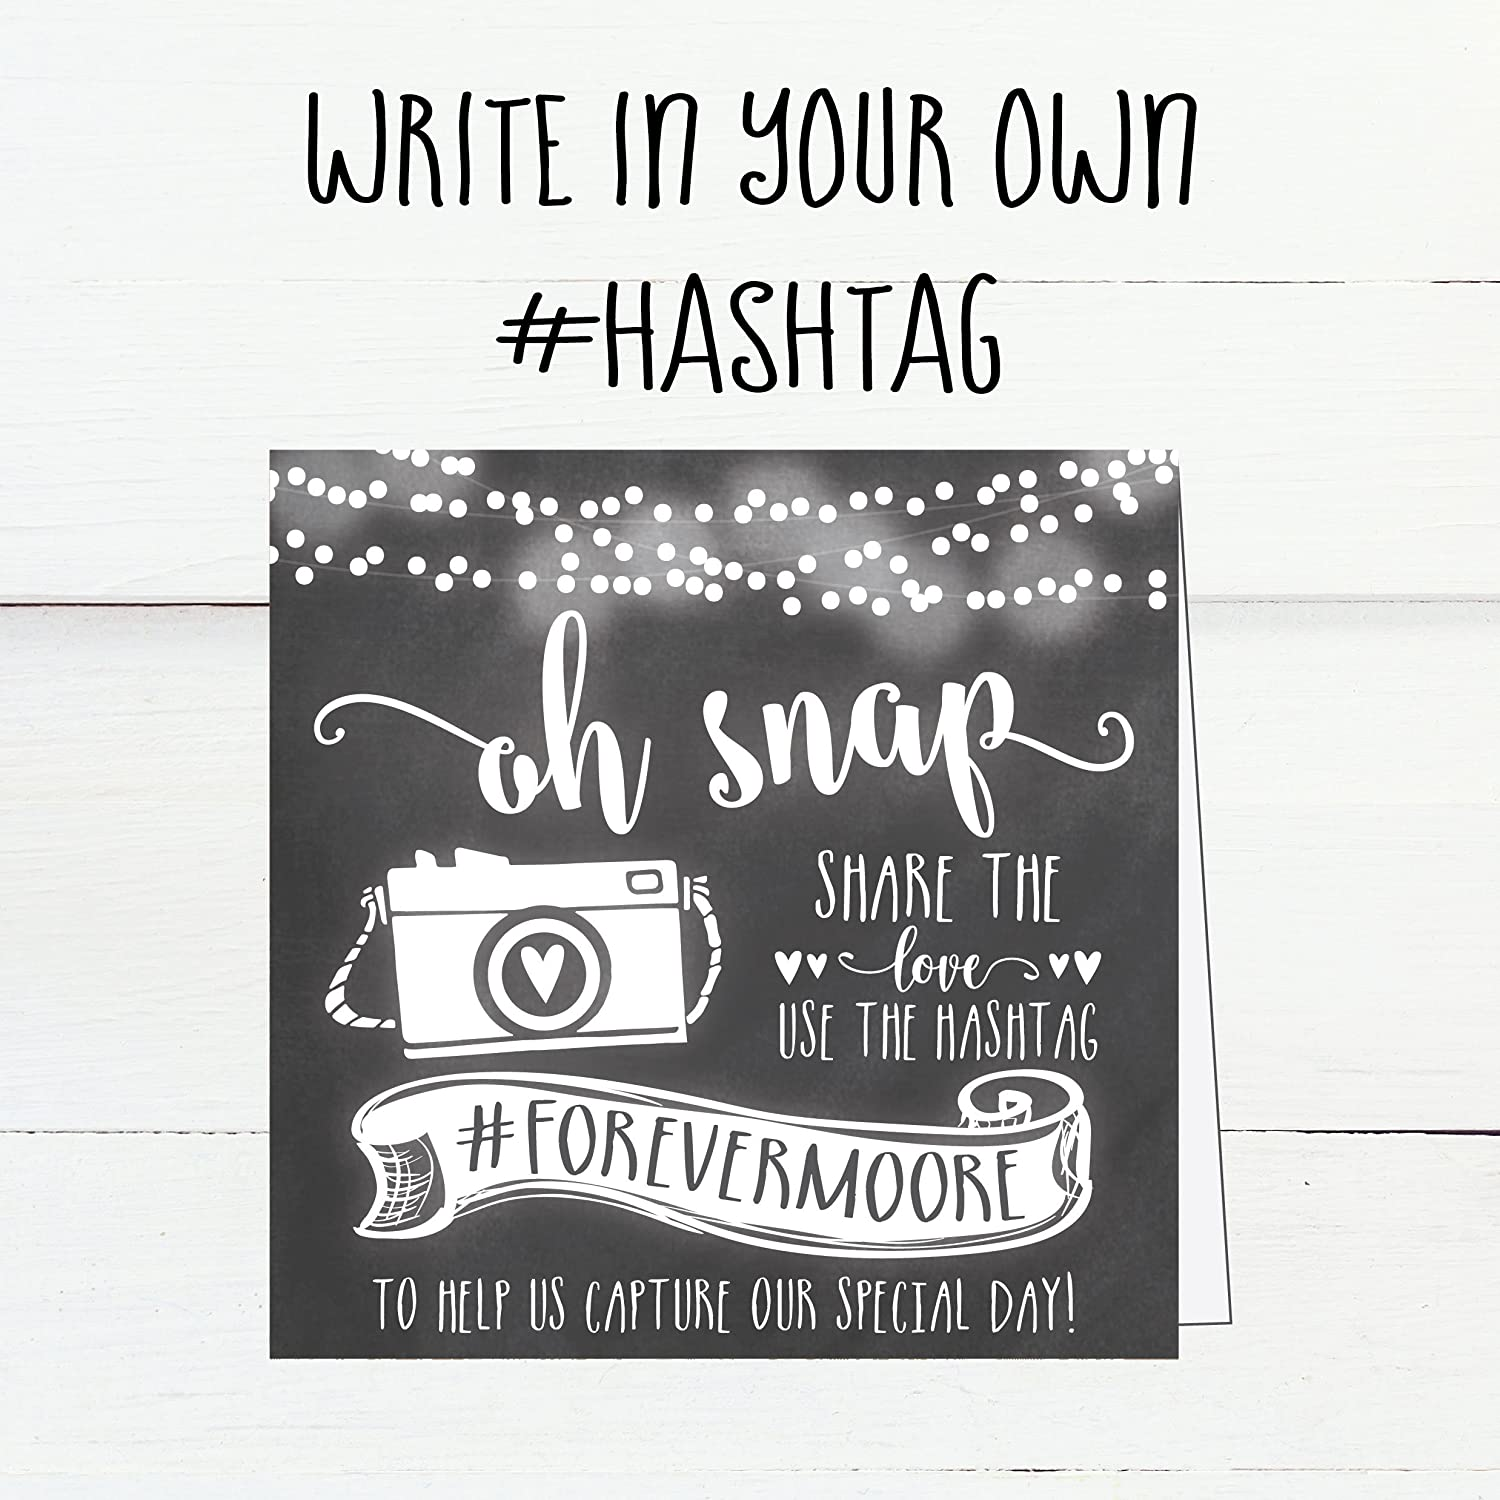 25 chalkboard wedding hashtag signs vintage chalk table top place cards or photo booth oh snap sign quotes for wedding wedding reception or ceremony